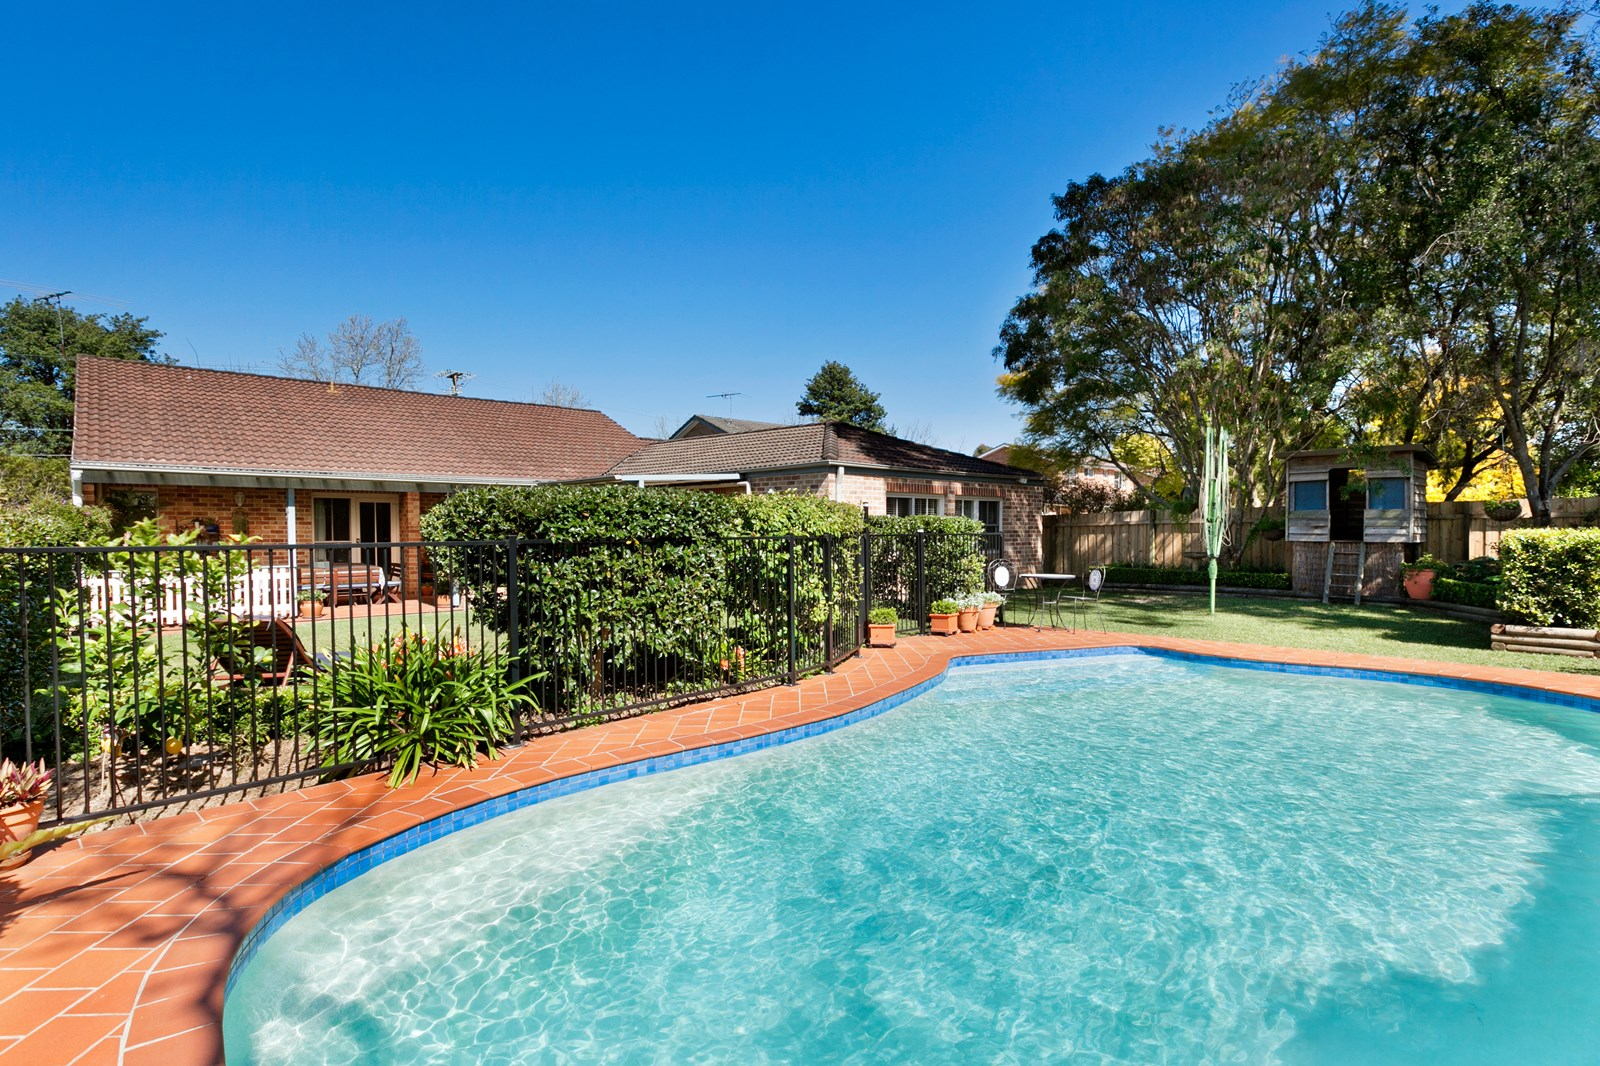 124 boundary road wahroonga nsw 2076 house for sale 2012276750 for East boundary road swimming pool